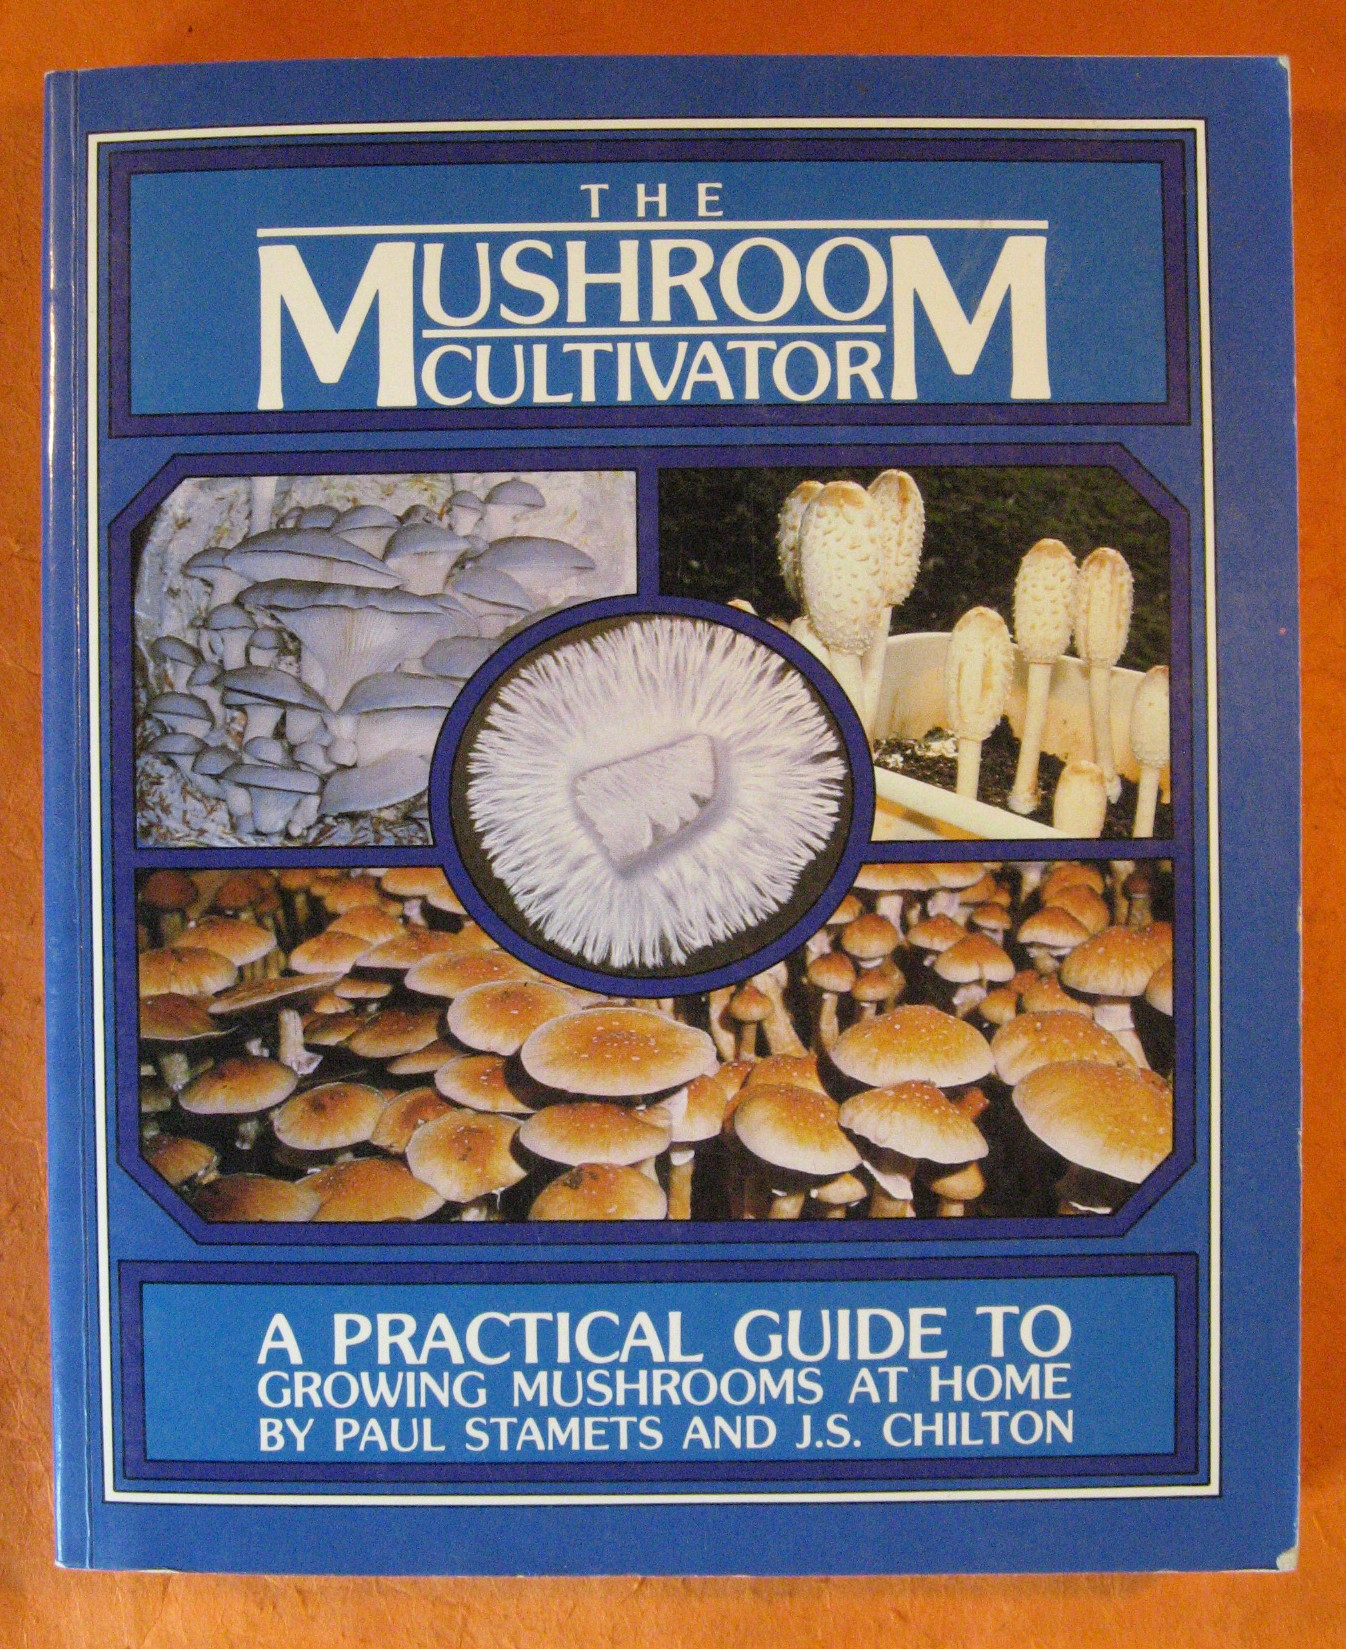 The Mushroom Cultivator: A Practical Guide to Growing Mushrooms at Home, Stamets, Paul